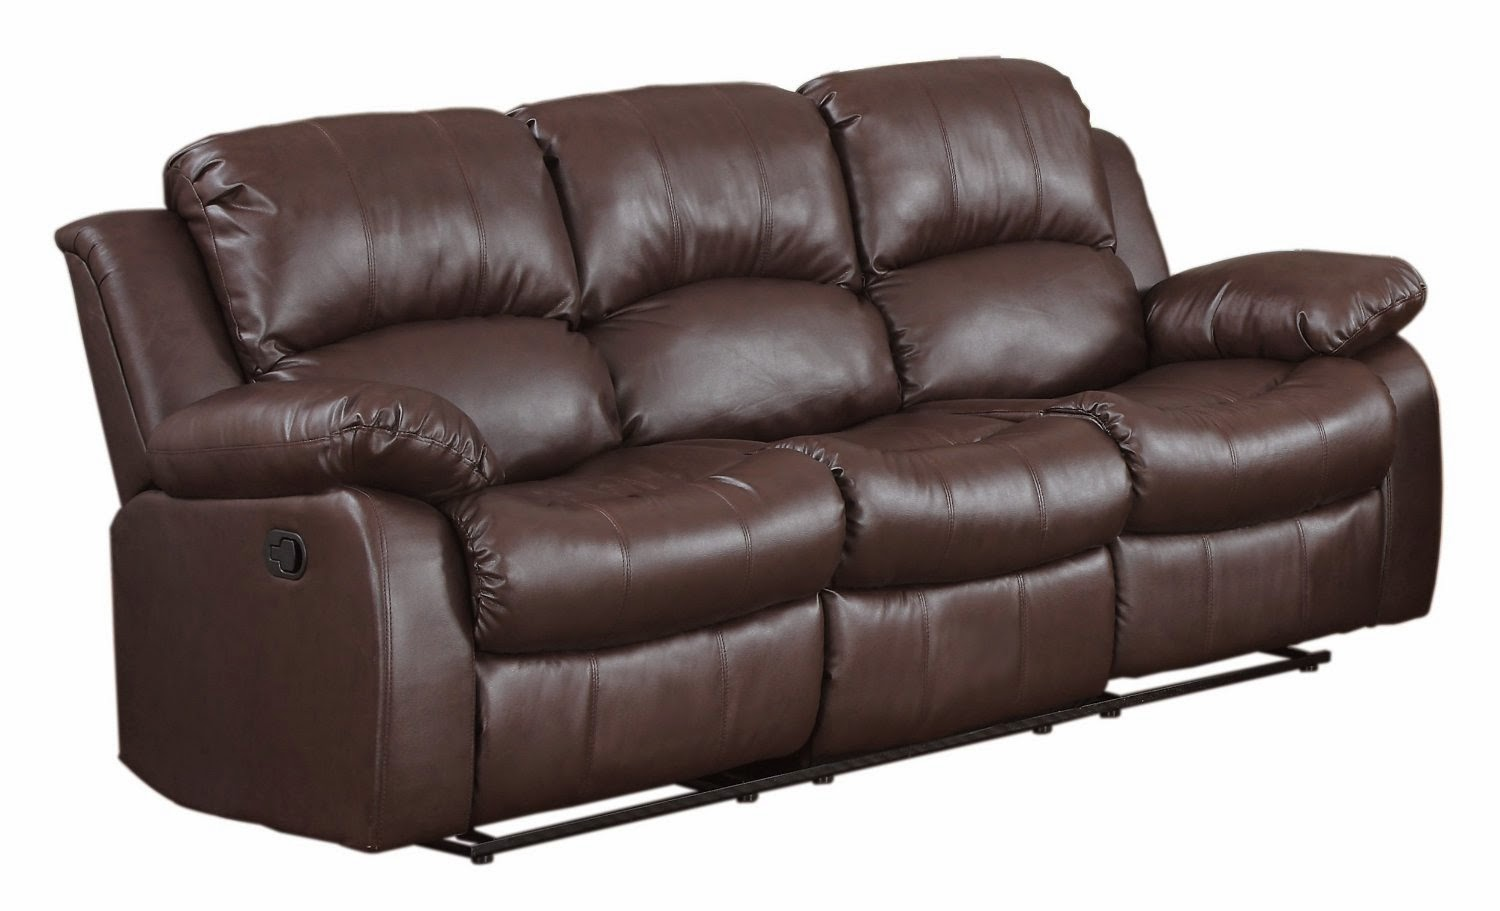 reclinable sectional sofas maxwell sofa for sale cheap recliner reclining